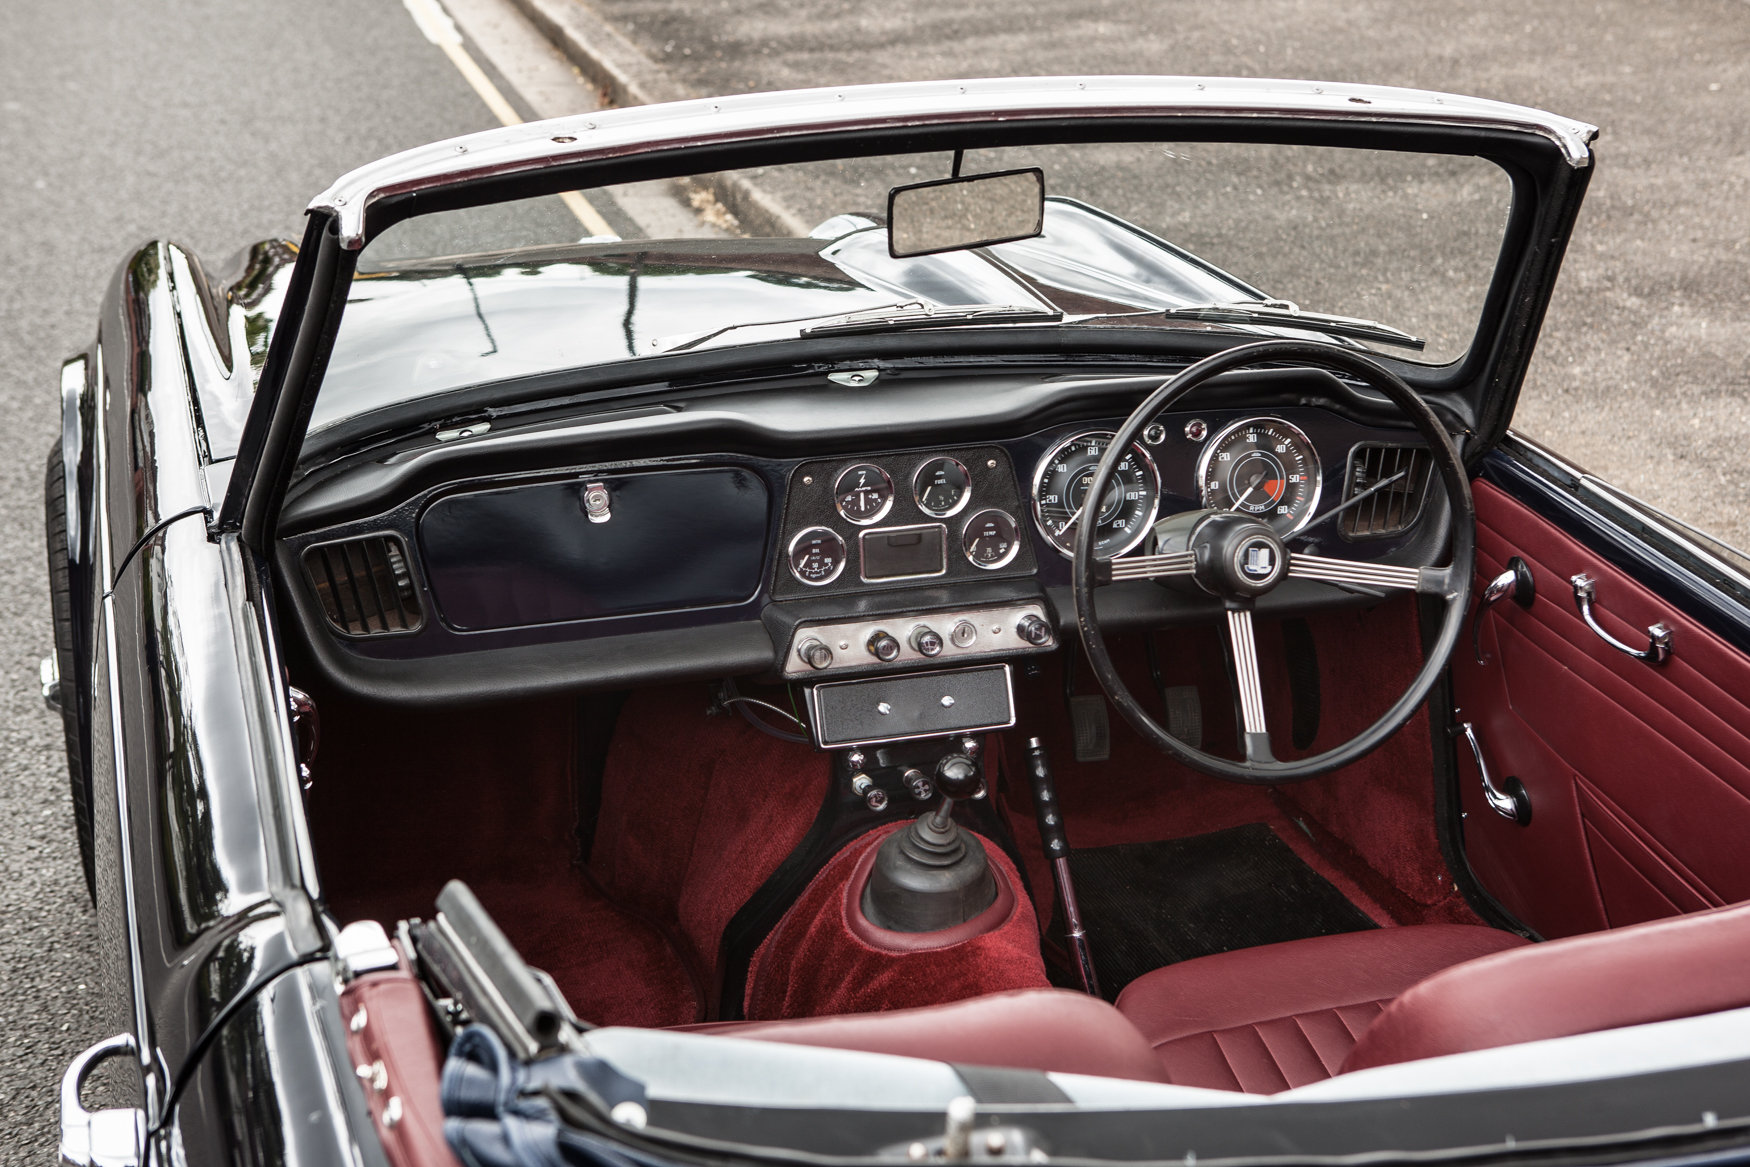 1964 Triumph TR4 with factory fitted overdrive For Sale (picture 3 of 5)